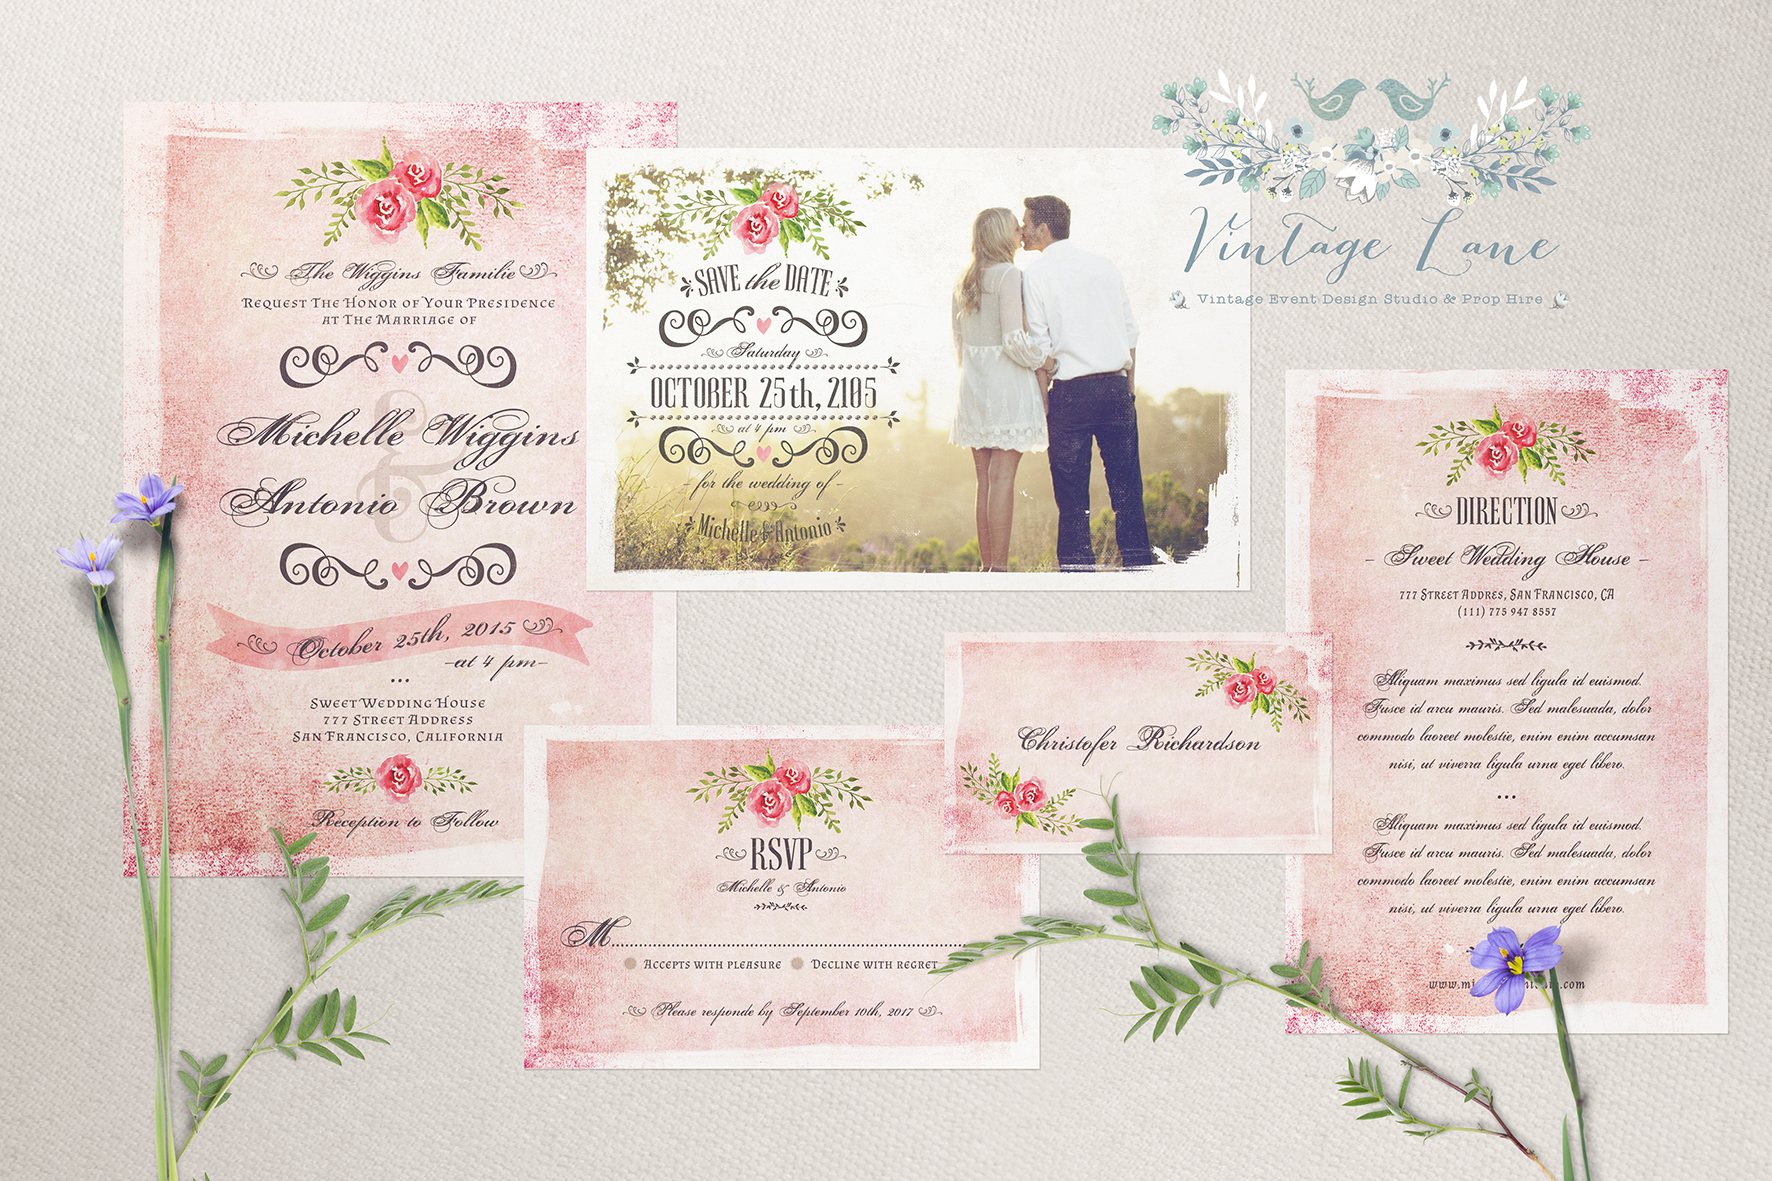 Vintage Wedding Invitations Ireland | Wedding